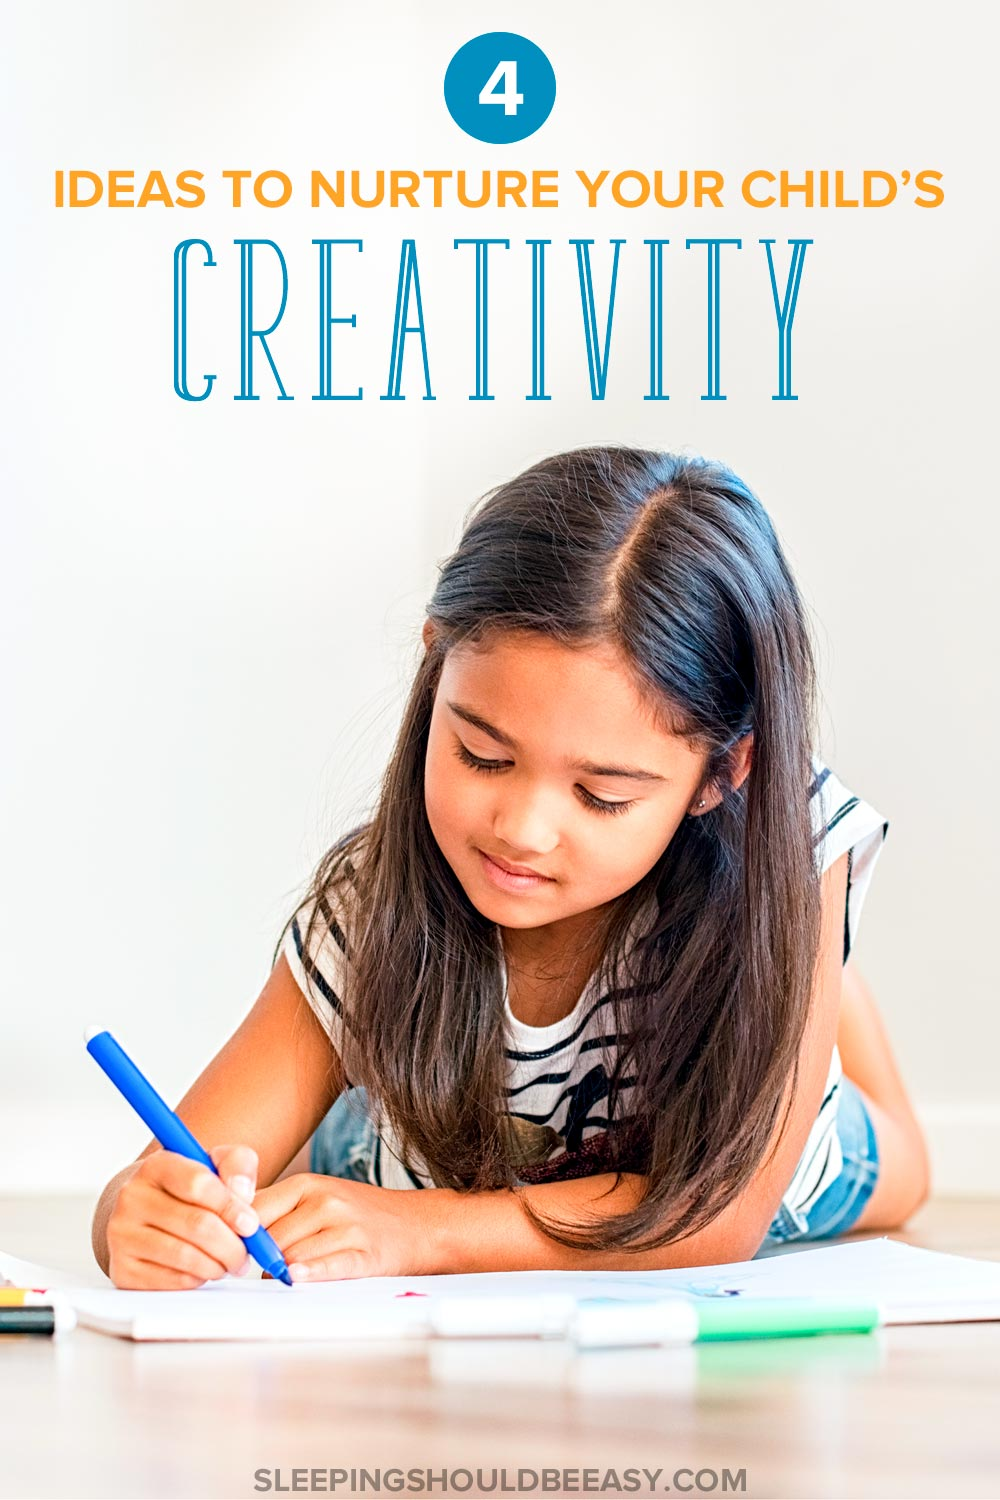 You know the importance of play and creativity for kids, but how can you encourage it in your home? Discover 4 fun and easy ideas to nurture your child's imagination — perfect for children of all ages!